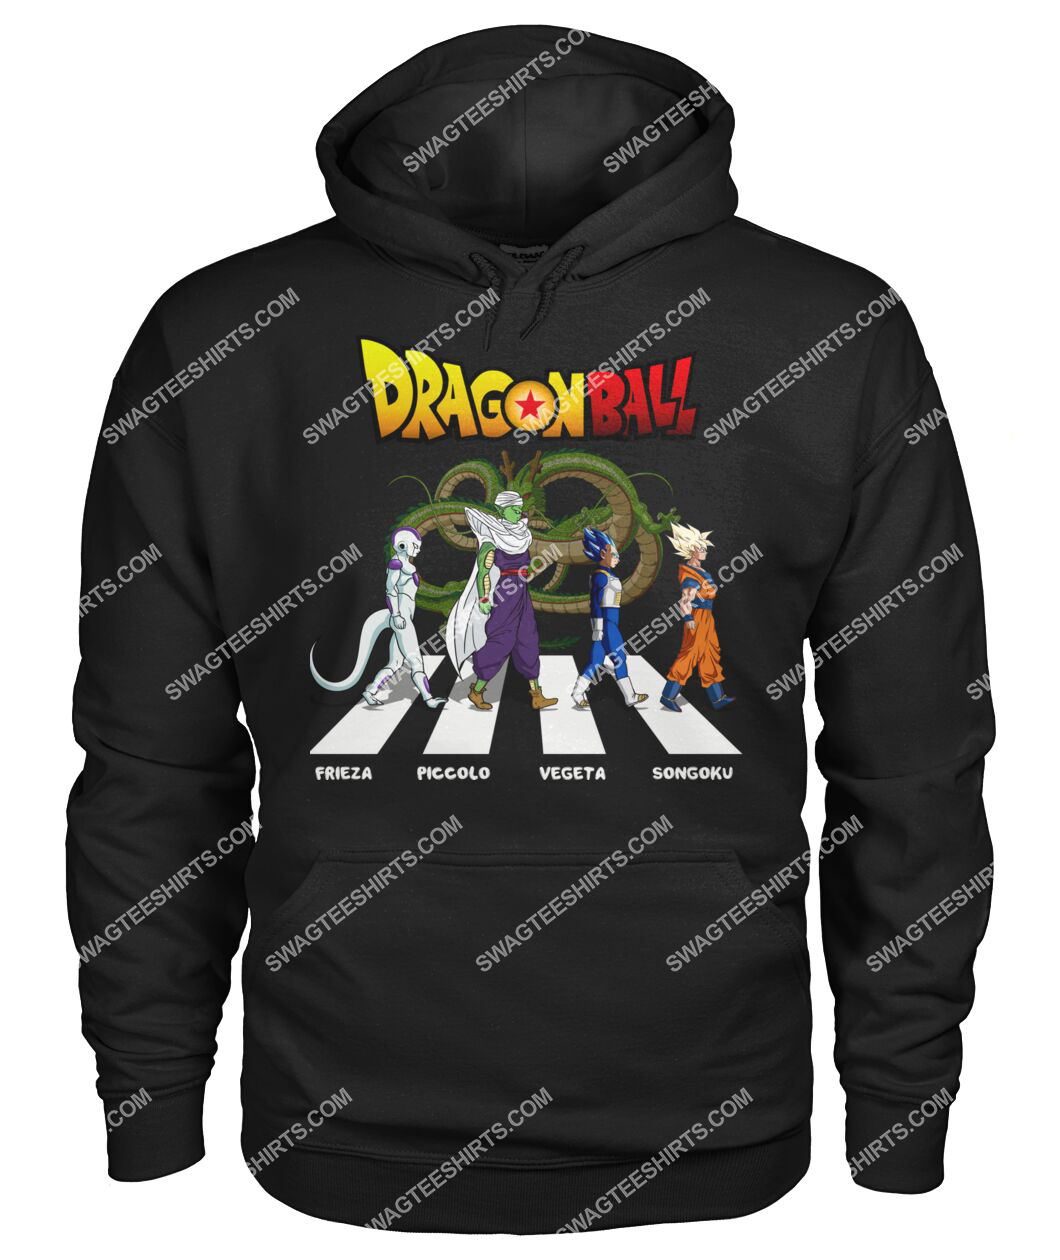 dragon ball z characters signatures abbey road hoodie 1